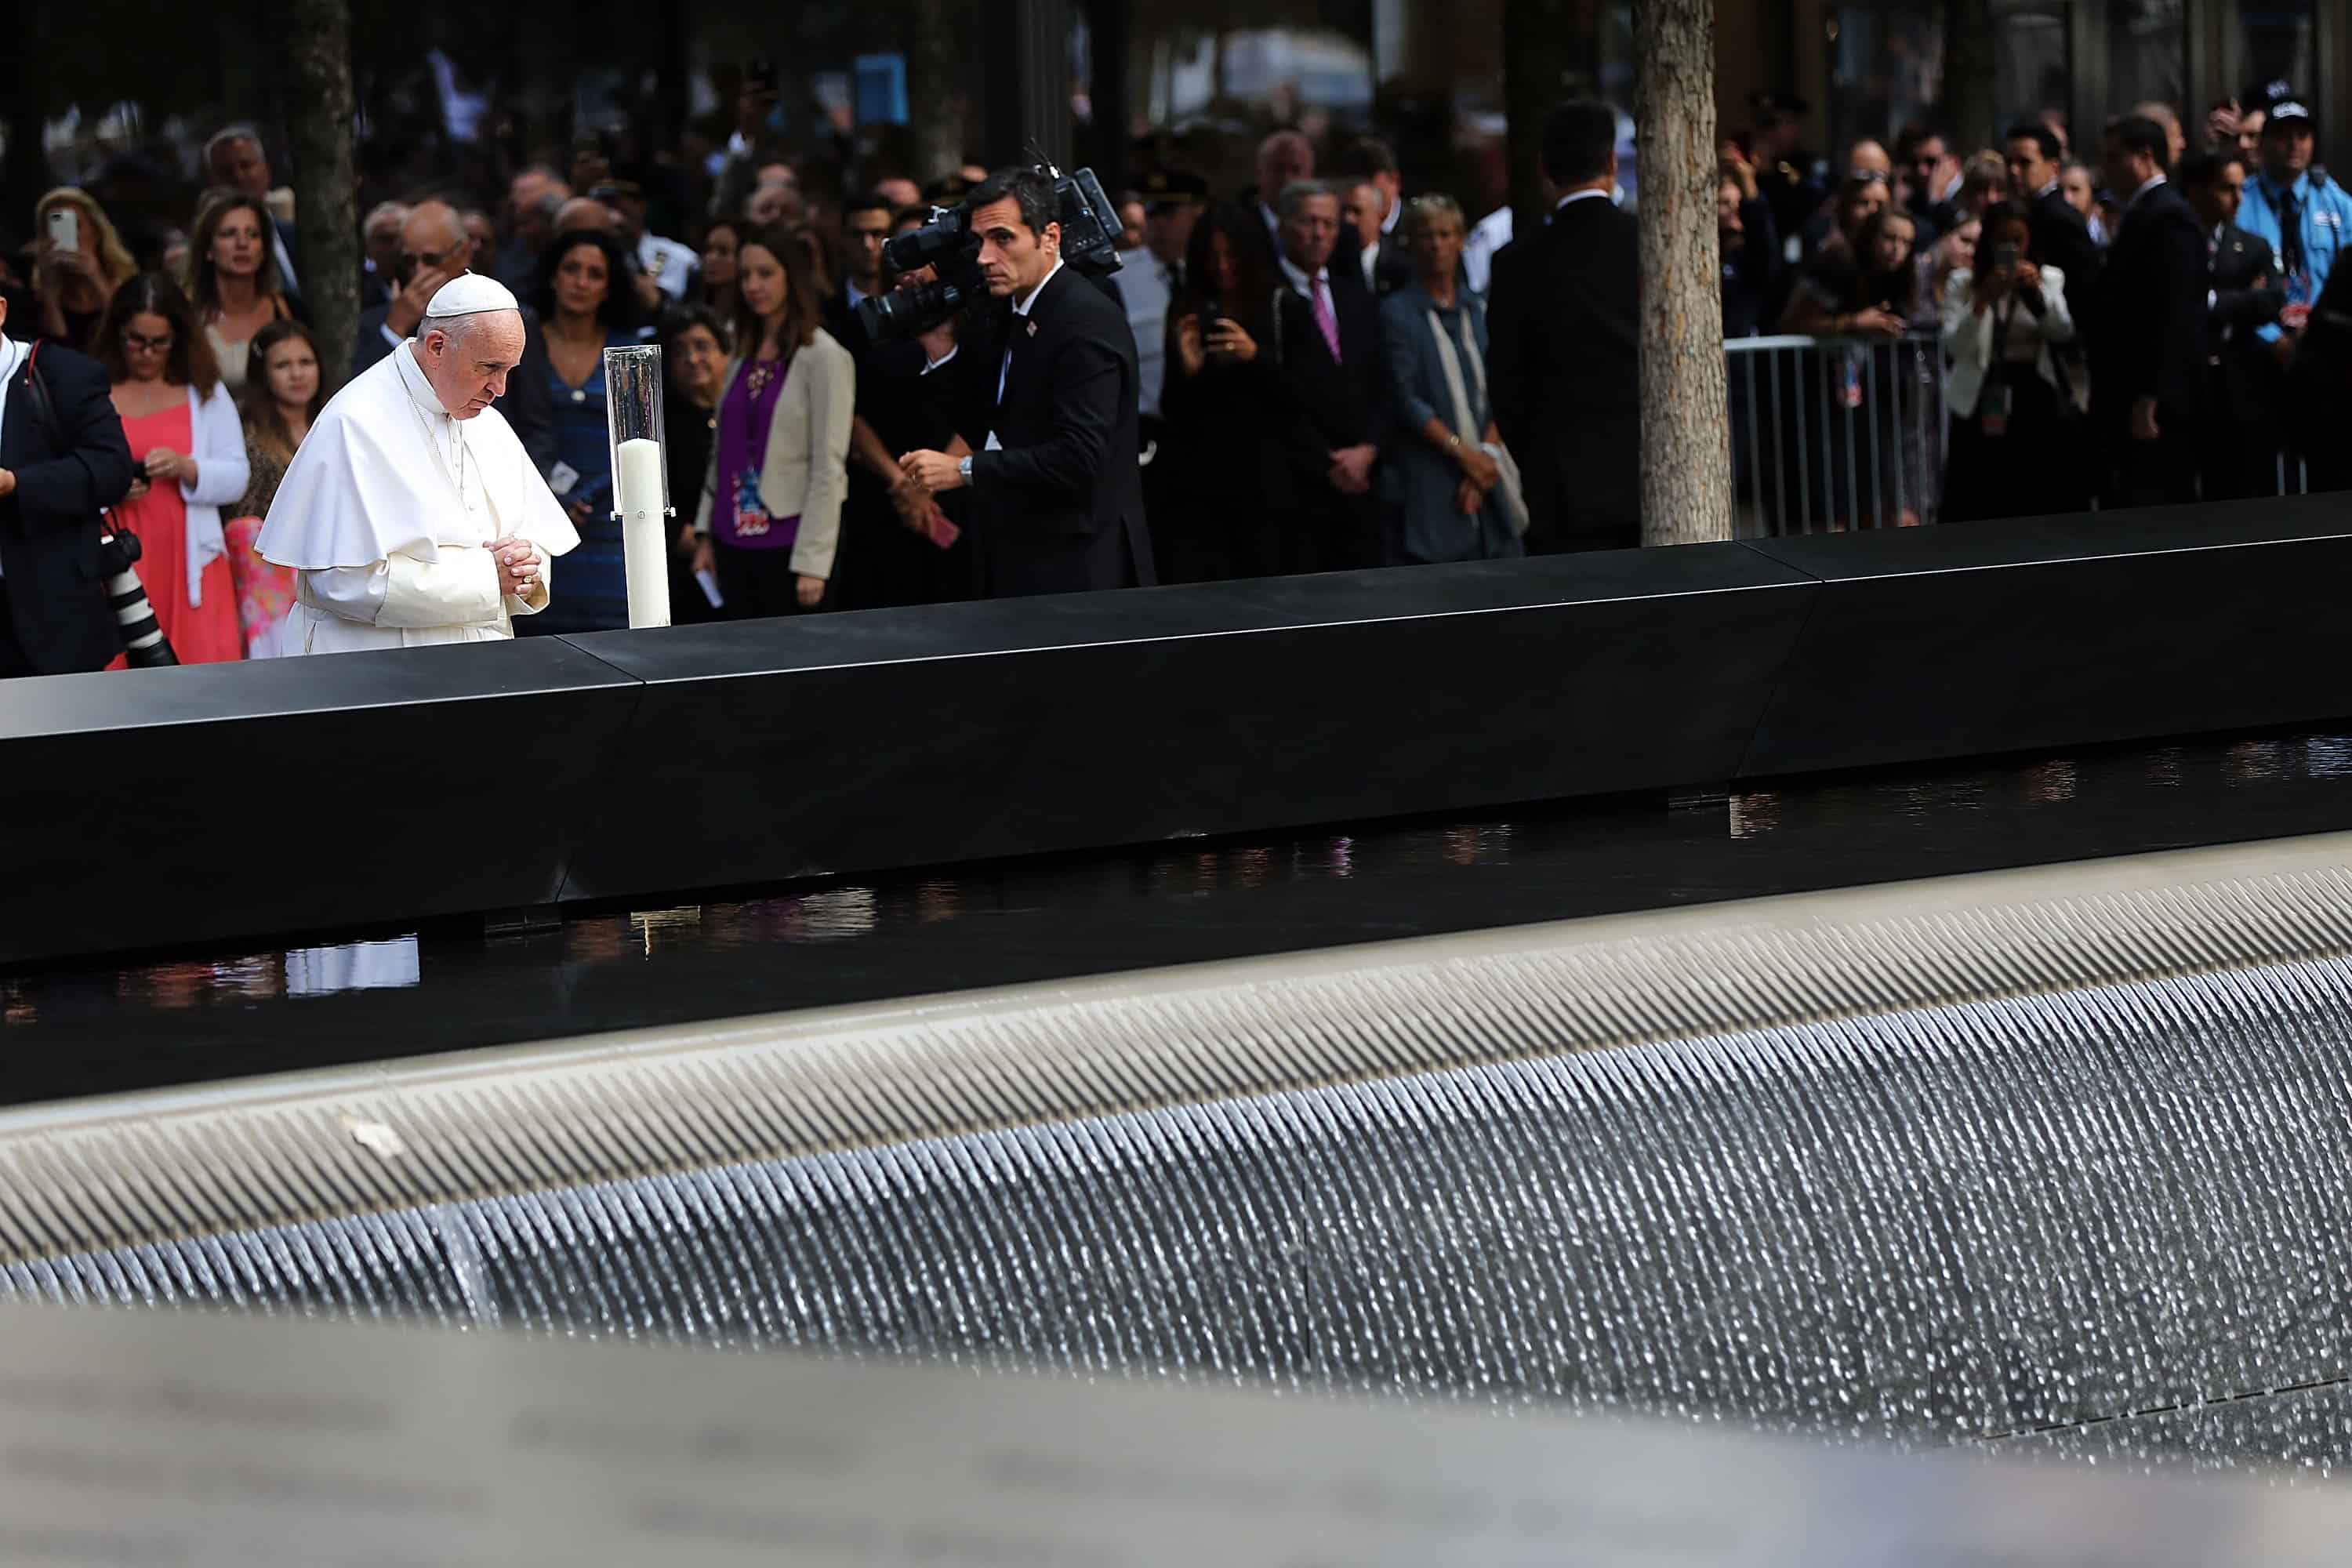 Pope Francis Prays At 9 11 Memorial After Un Speech The Tico Times Bouncless Switch With Ne555 Pauses During A Visit To Ground Zero